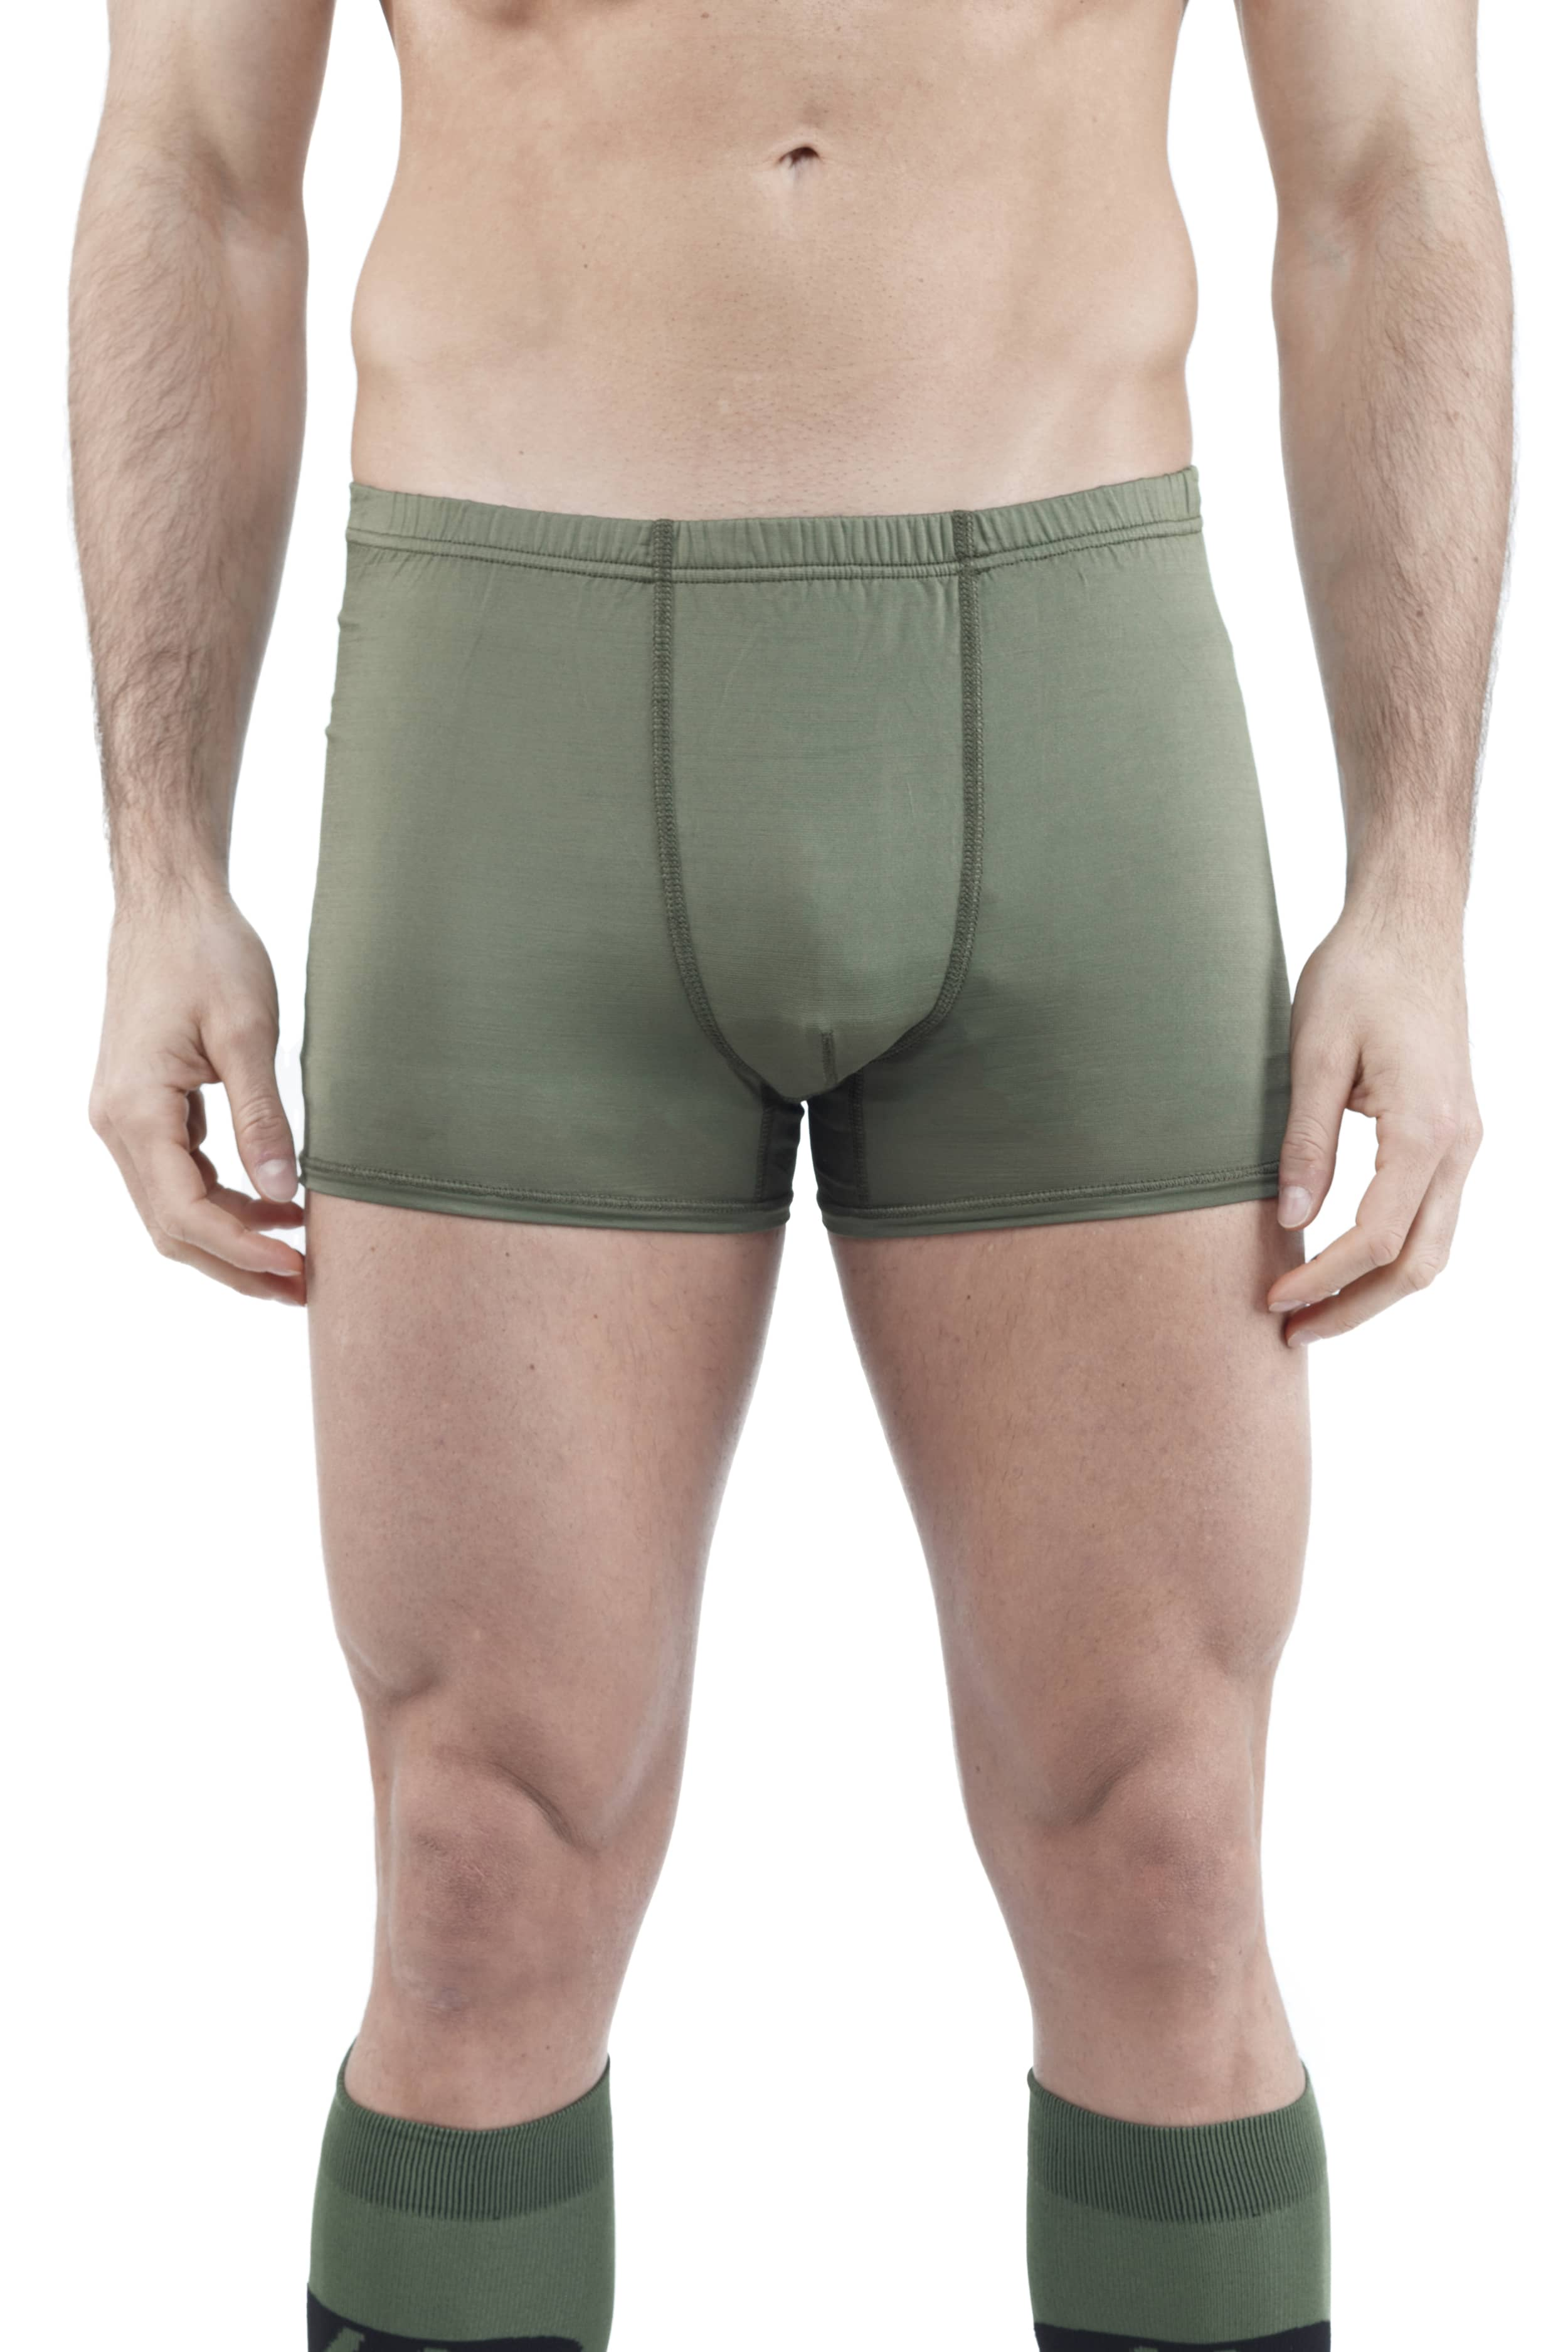 ARMY FIREPROOF COMBAT BOXER SHORTS